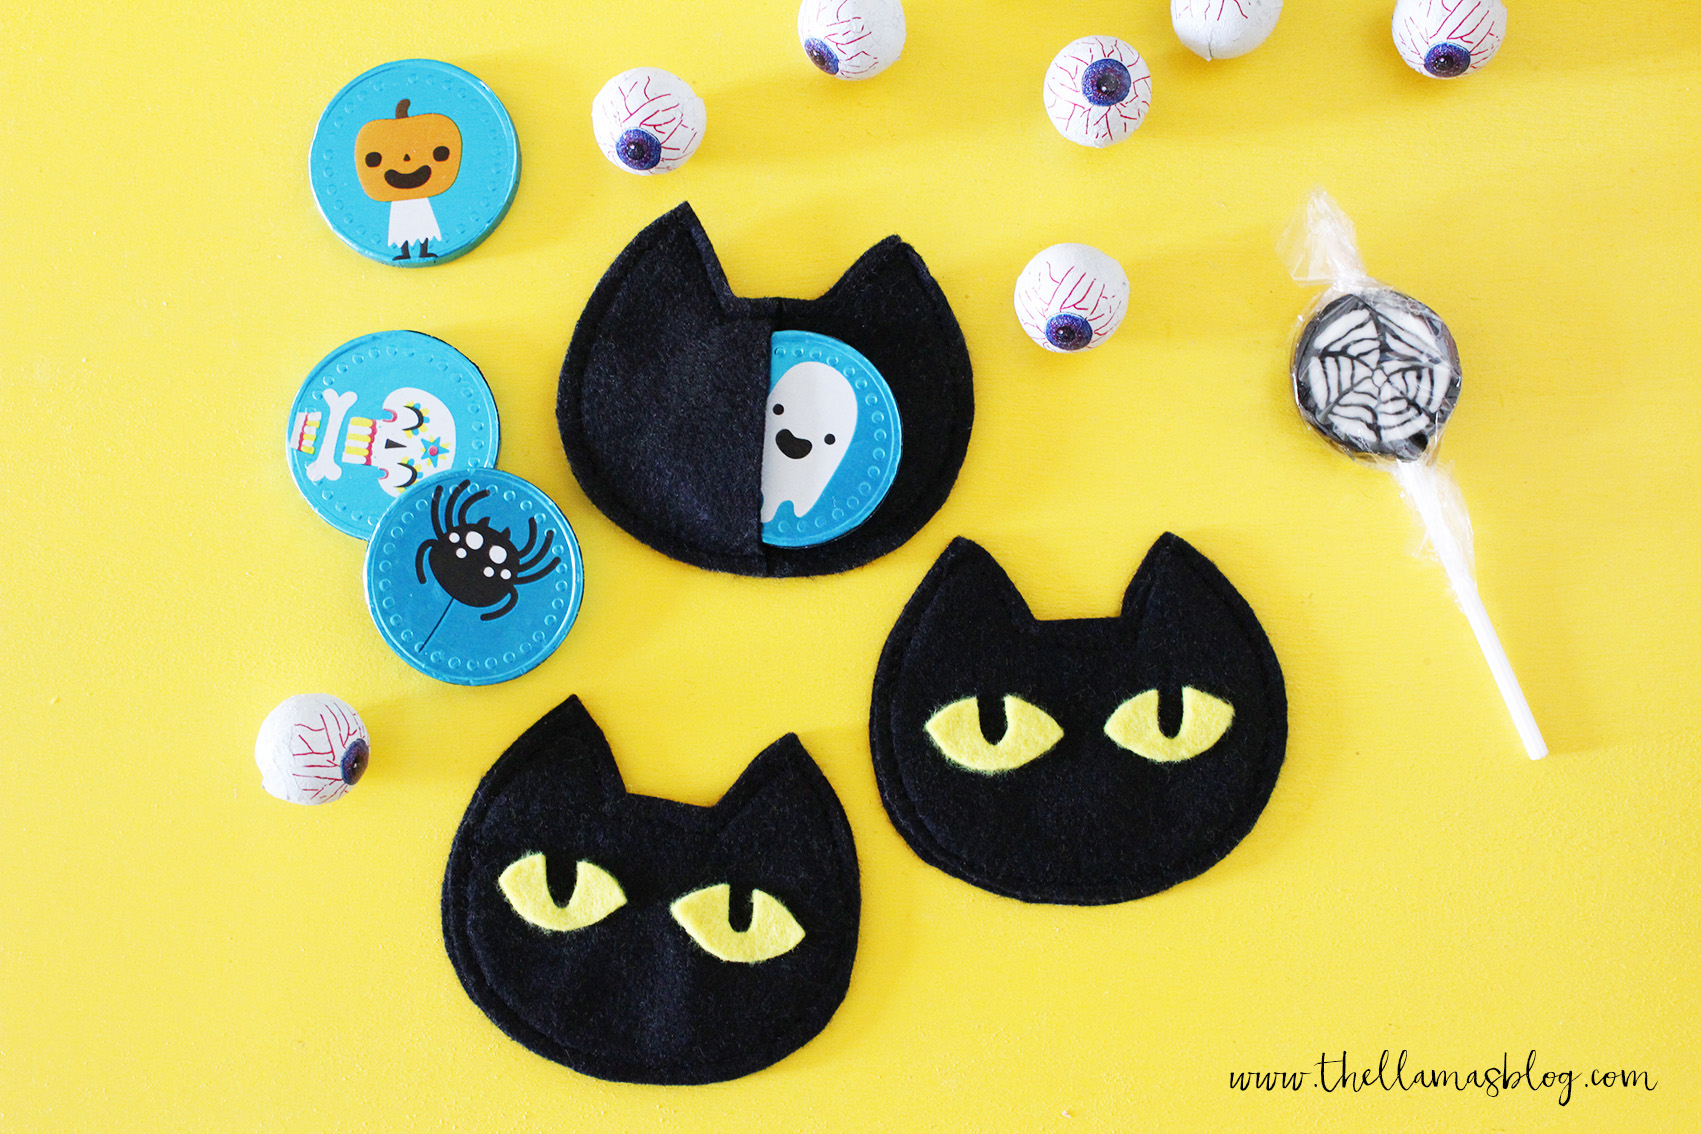 The_llamas_blog_Halloween_cat_treat_bags_1_thellamas